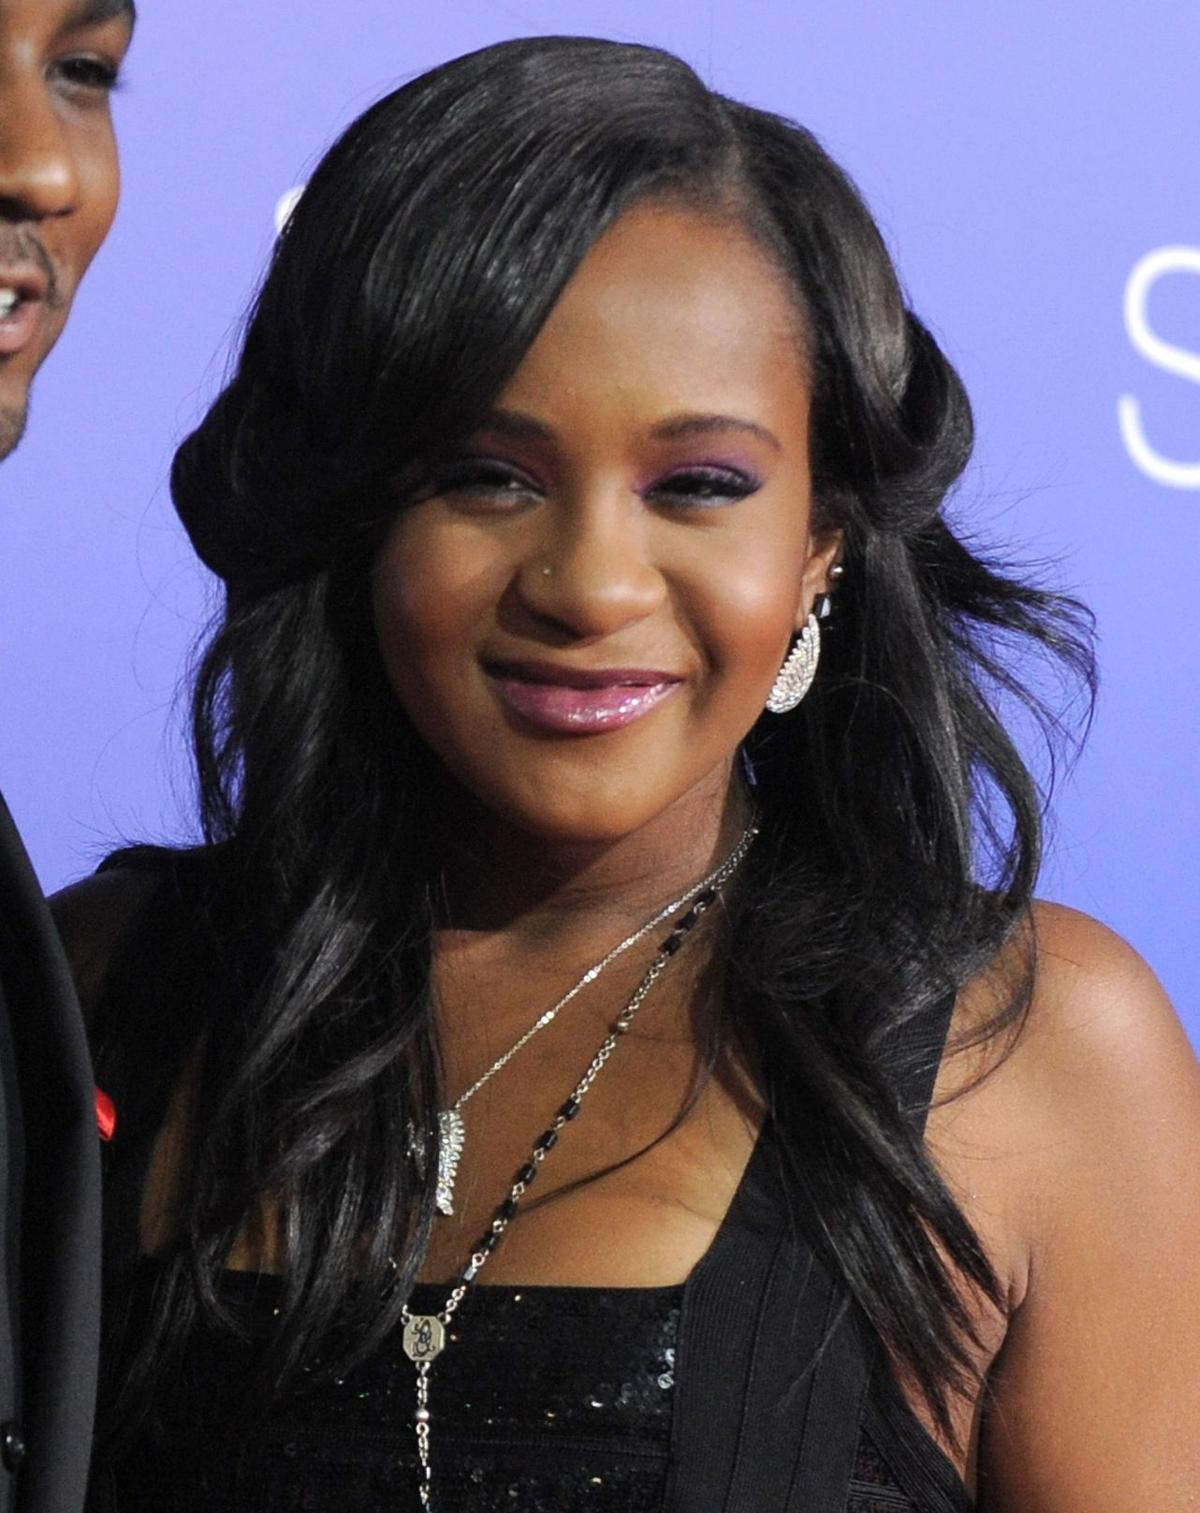 Most searched in 2015? Bobbi Kristina Brown, says Yahoo